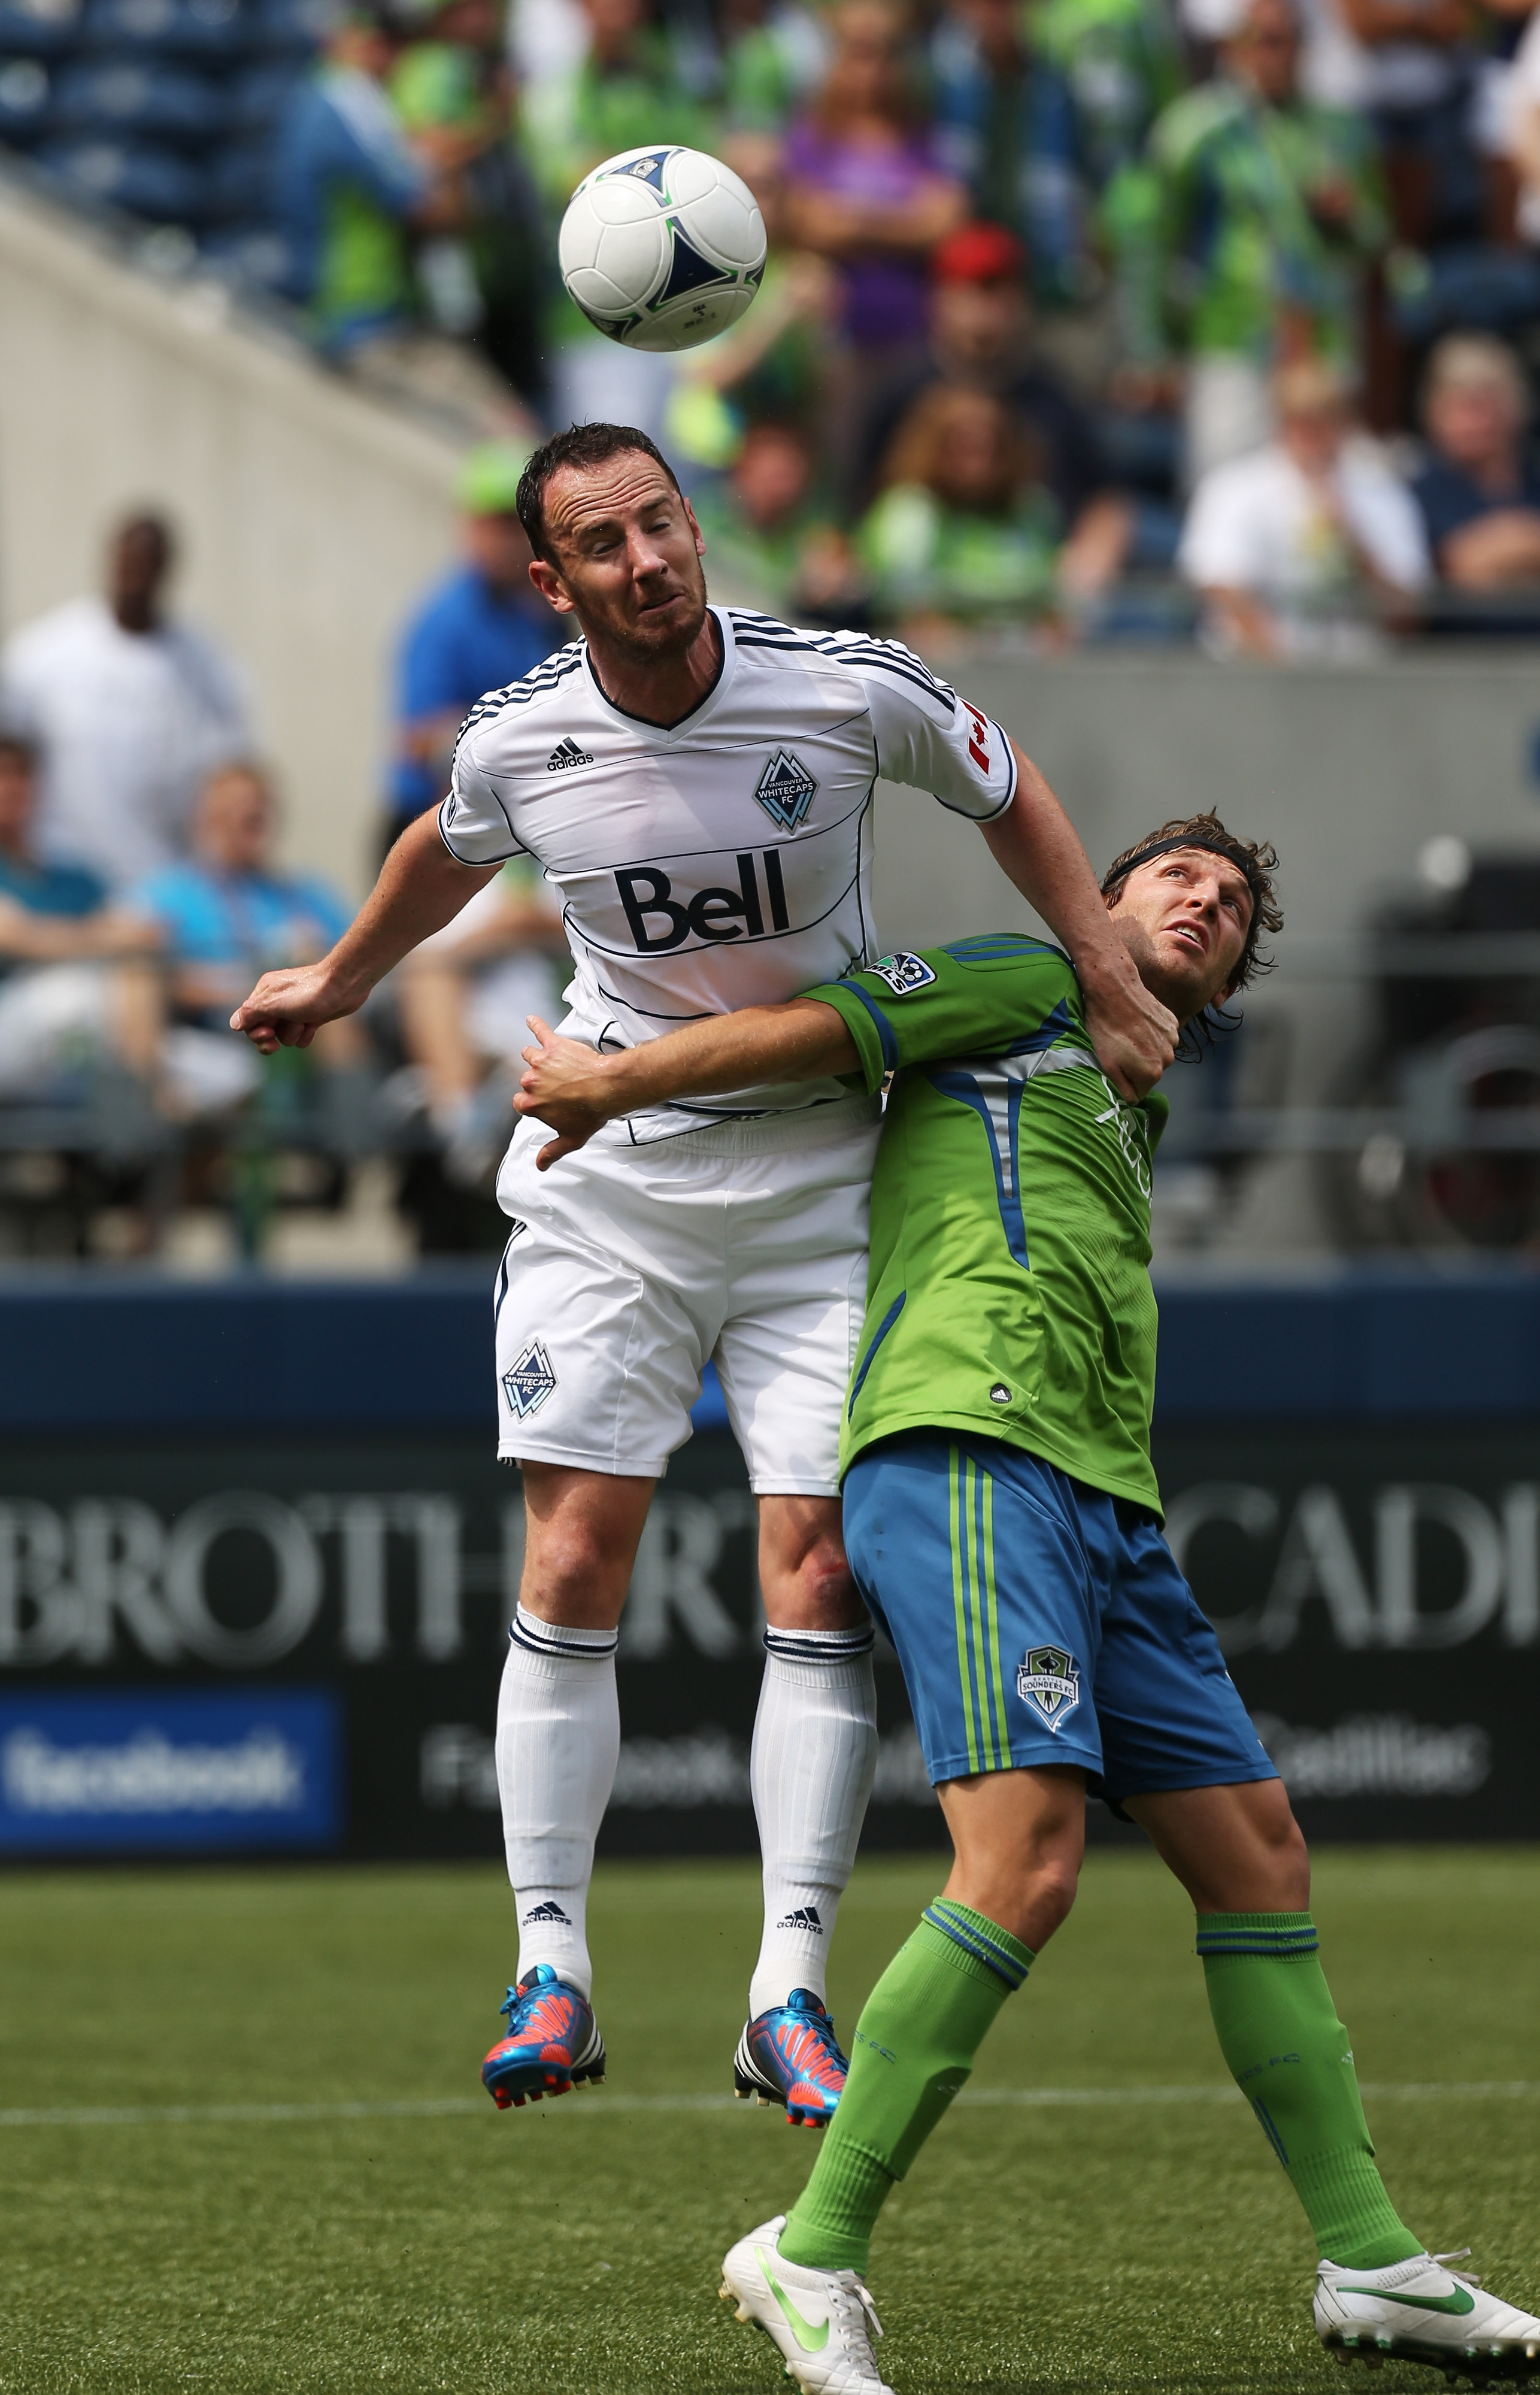 33-year-old Englishman Andy O'Brien is the newest member of Martin Rennie's, shall we say, <em>mature </em>back line.